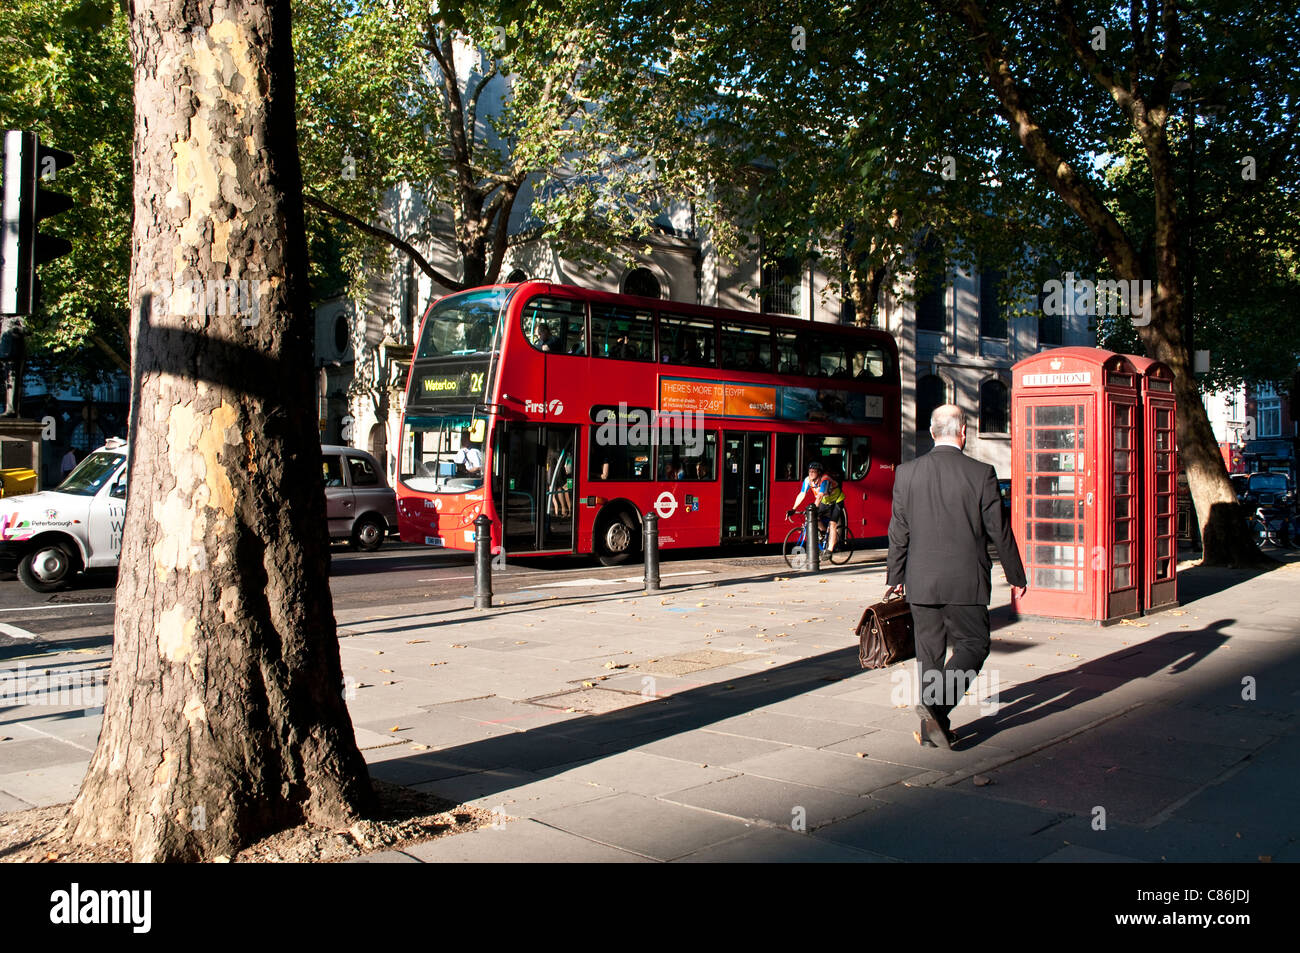 Red bus and telephone box on the Strand, London, United Kingdom - Stock Image